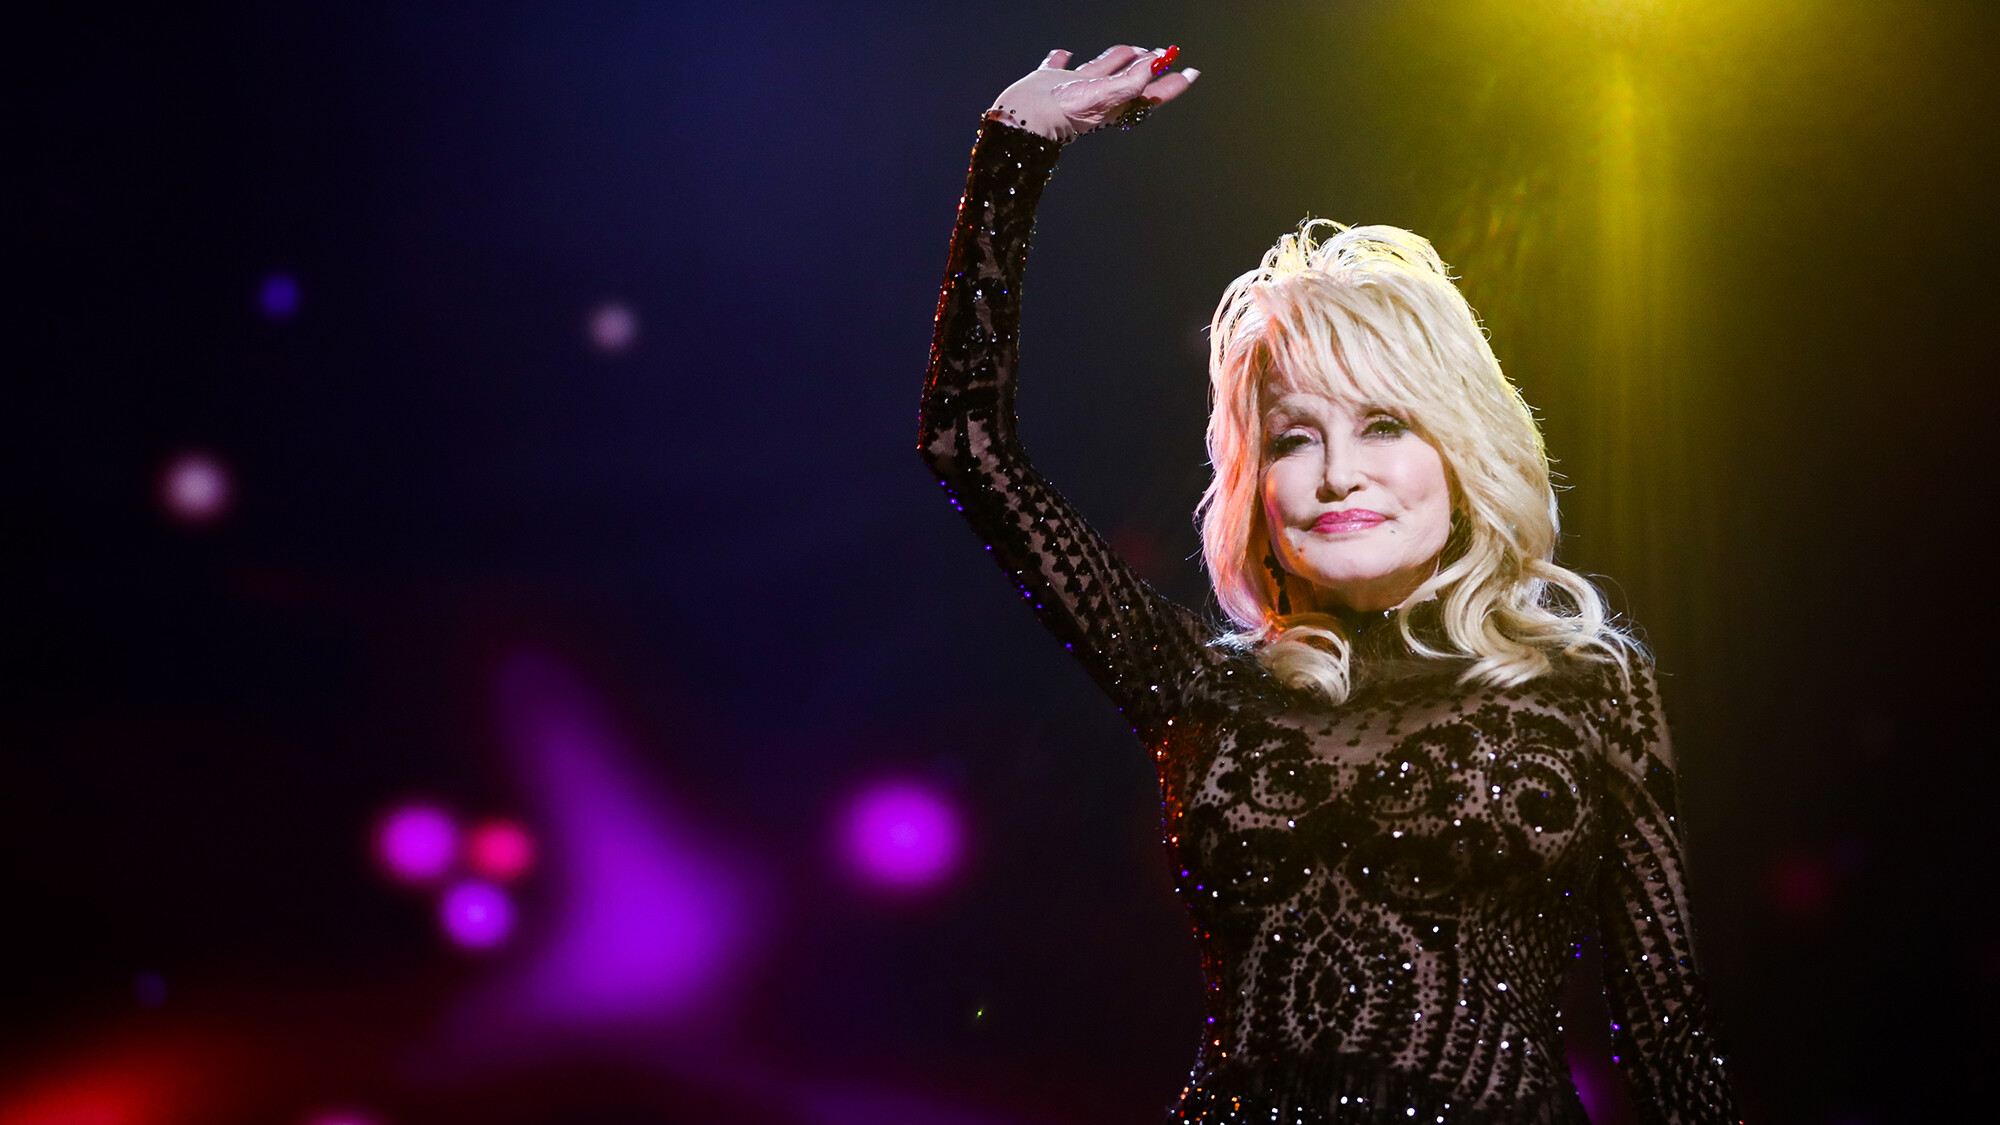 Dolly Parton is releasing her first novel and a companion album next year